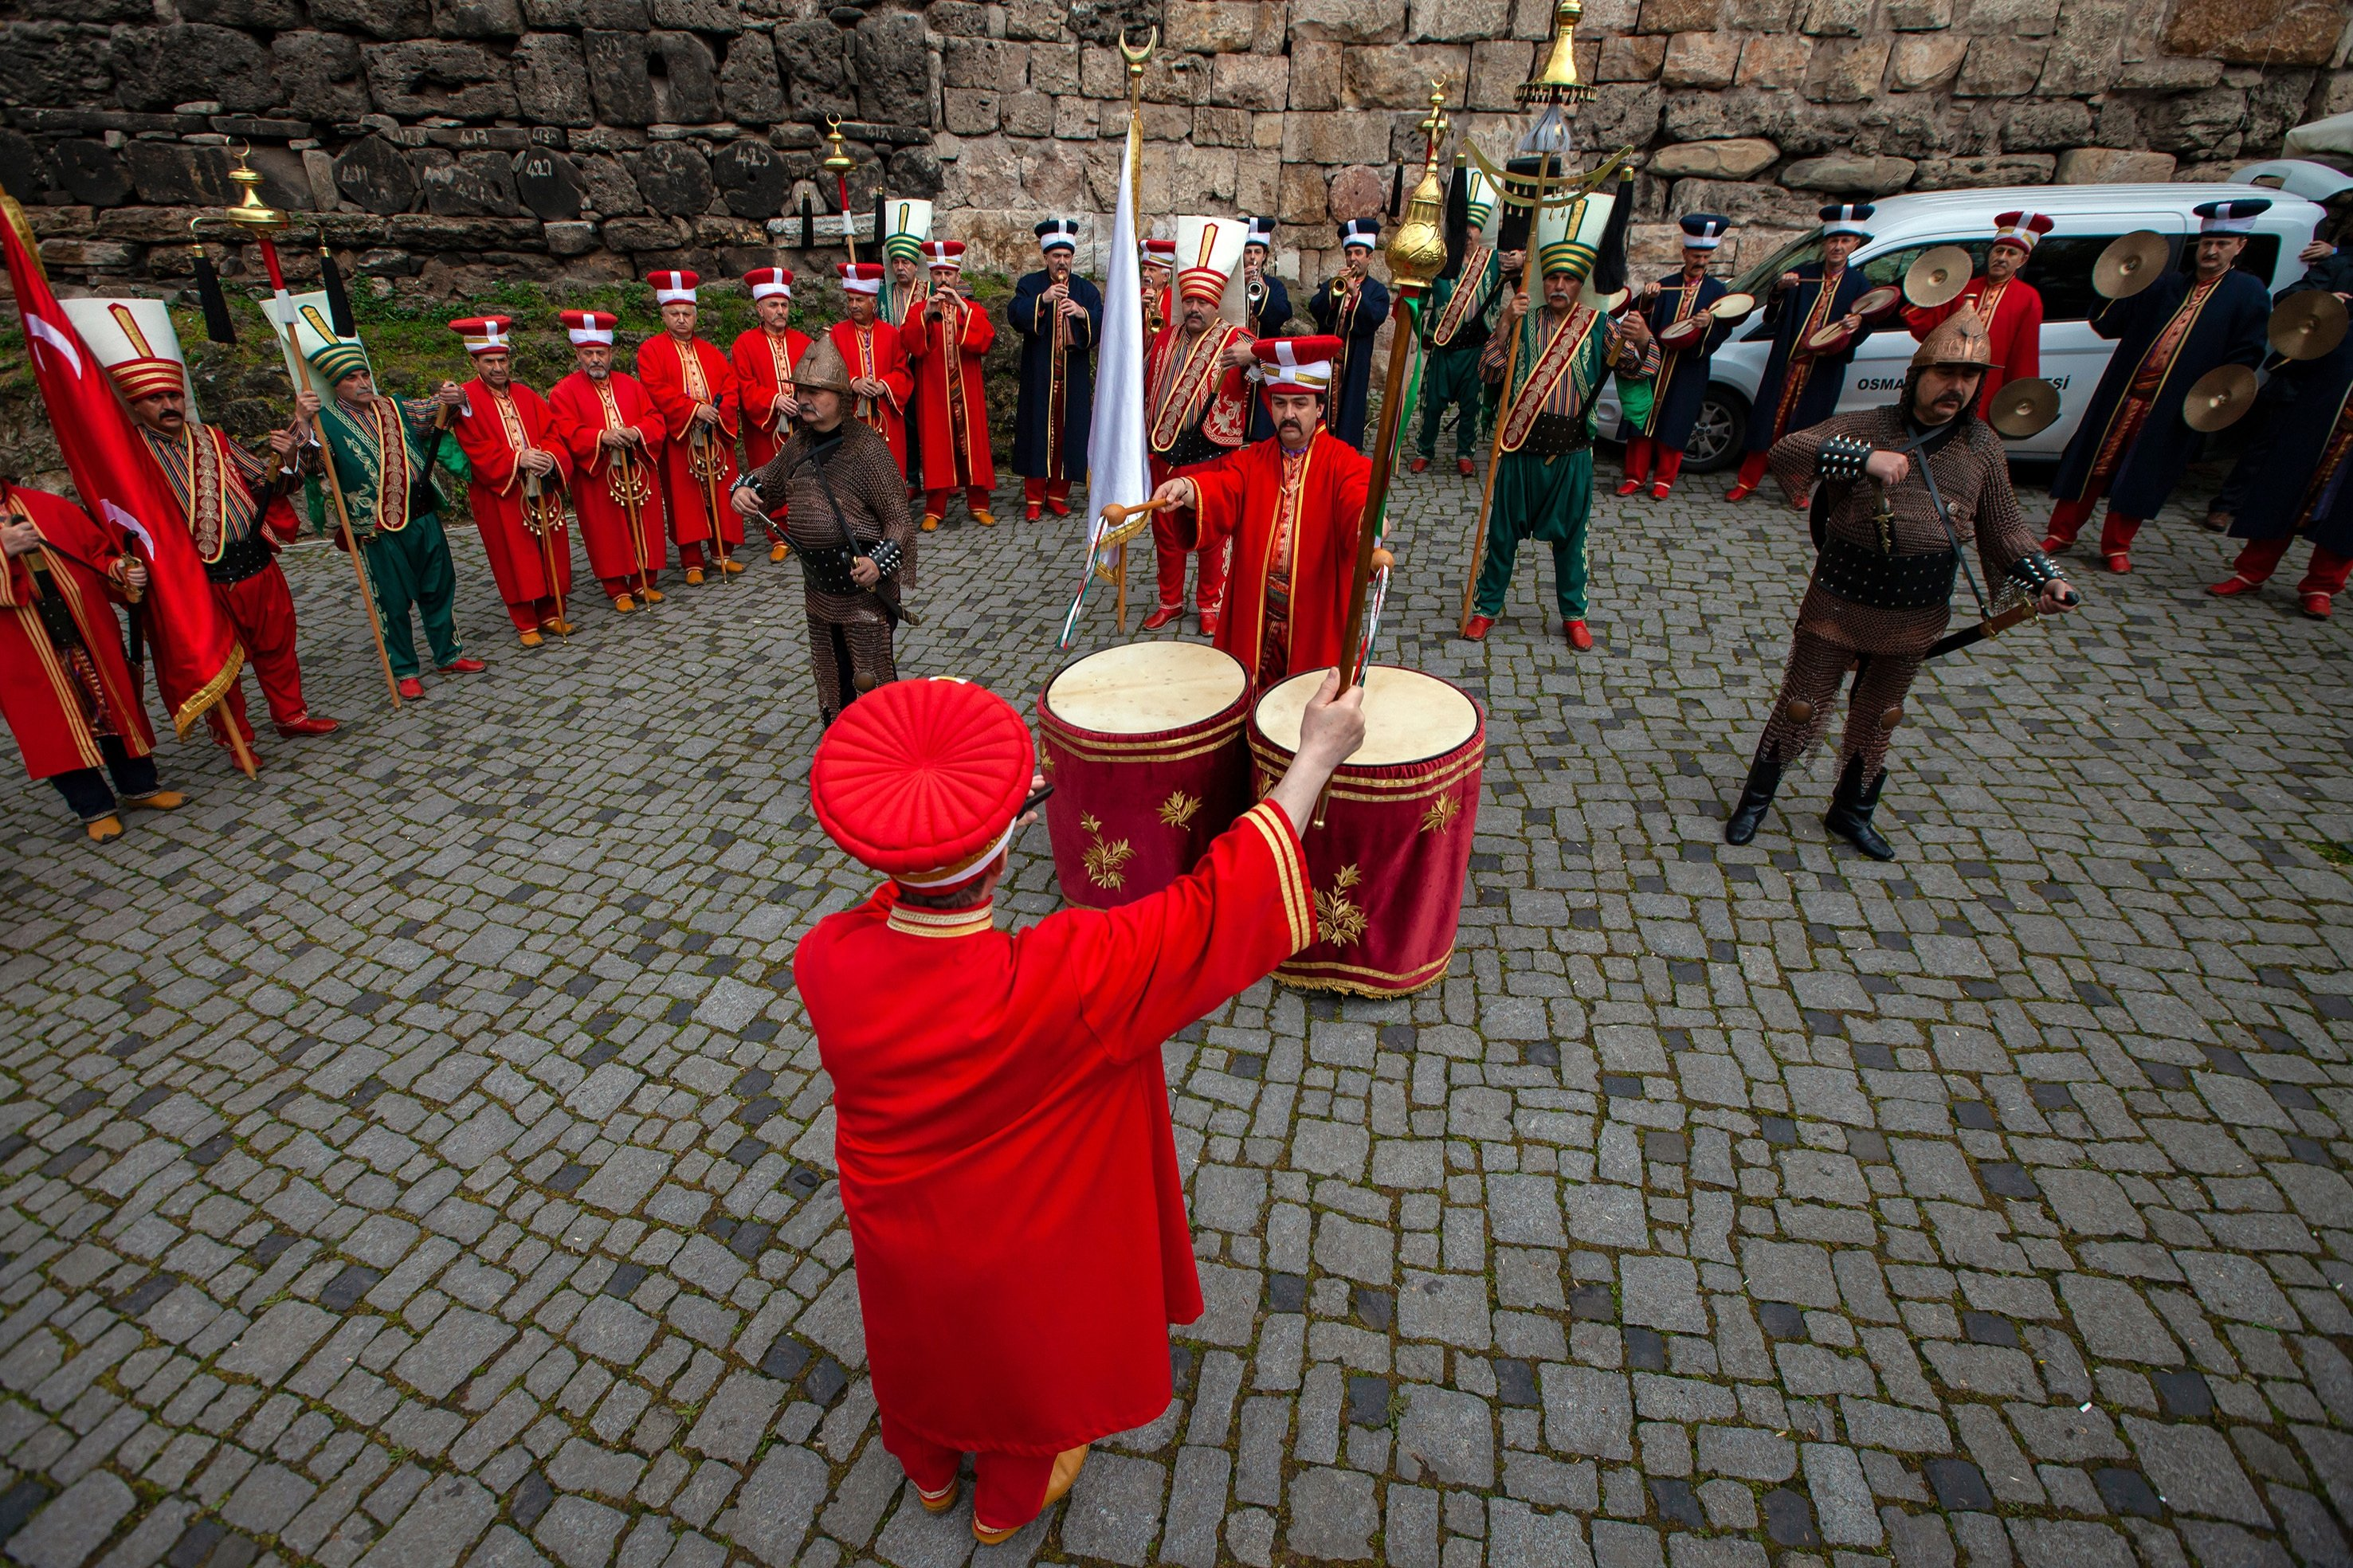 The sound of drums in Mehter music creates a dynamic rhythm that frightened enemies during wartimes. (Shutterstock Photo)